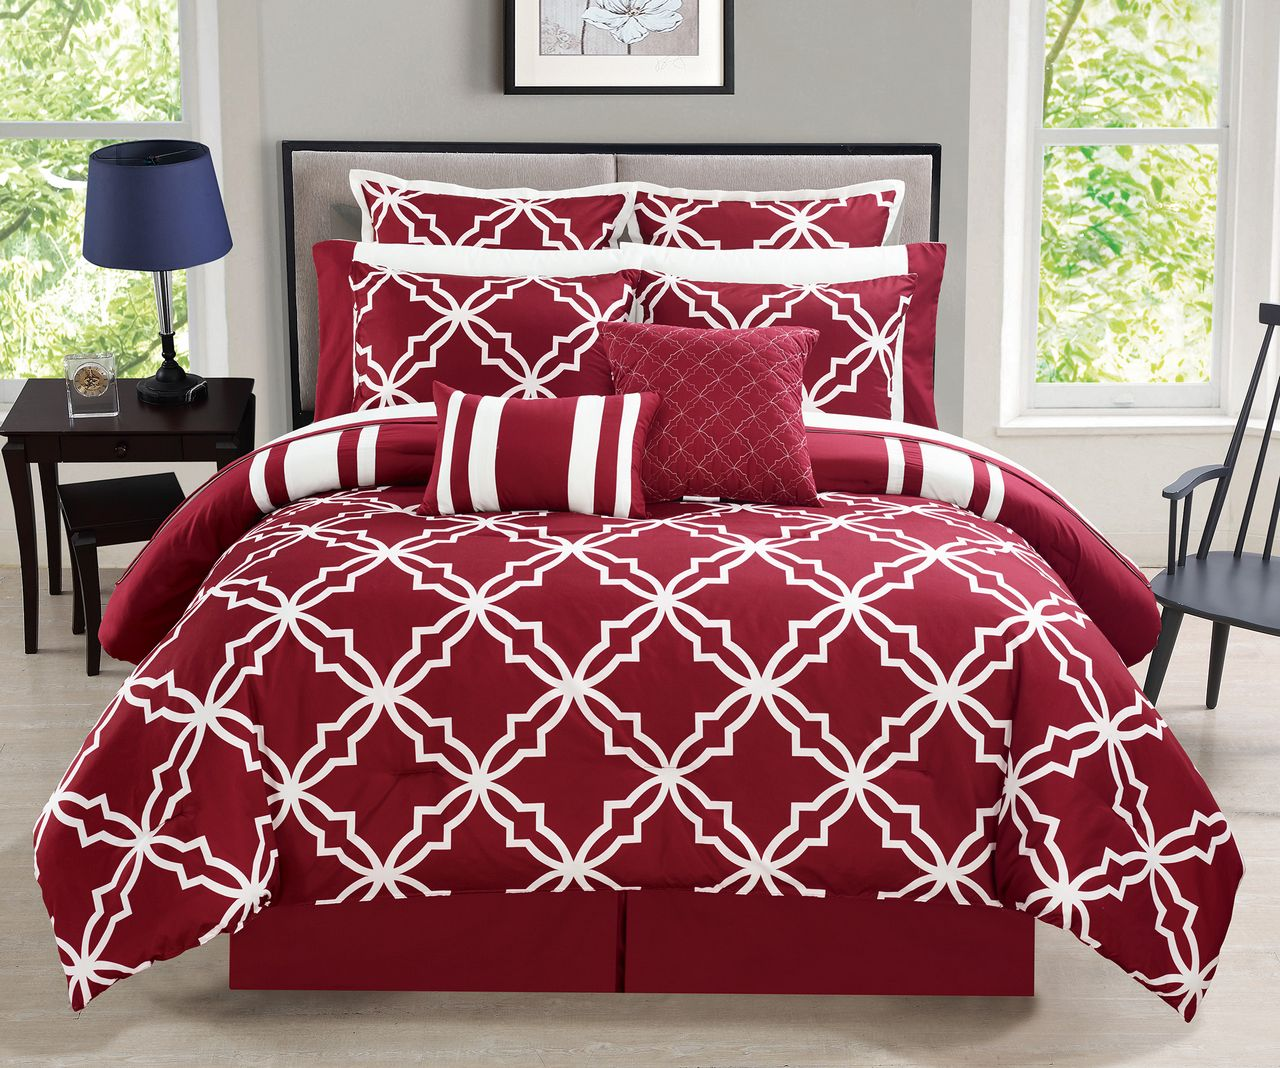 bedding walmart photo comforter king set grey duvets bedroom maroon stupendous covers size queen brown teal duvet sets burgundy sheets and blue flannel cover full cream white magnificent